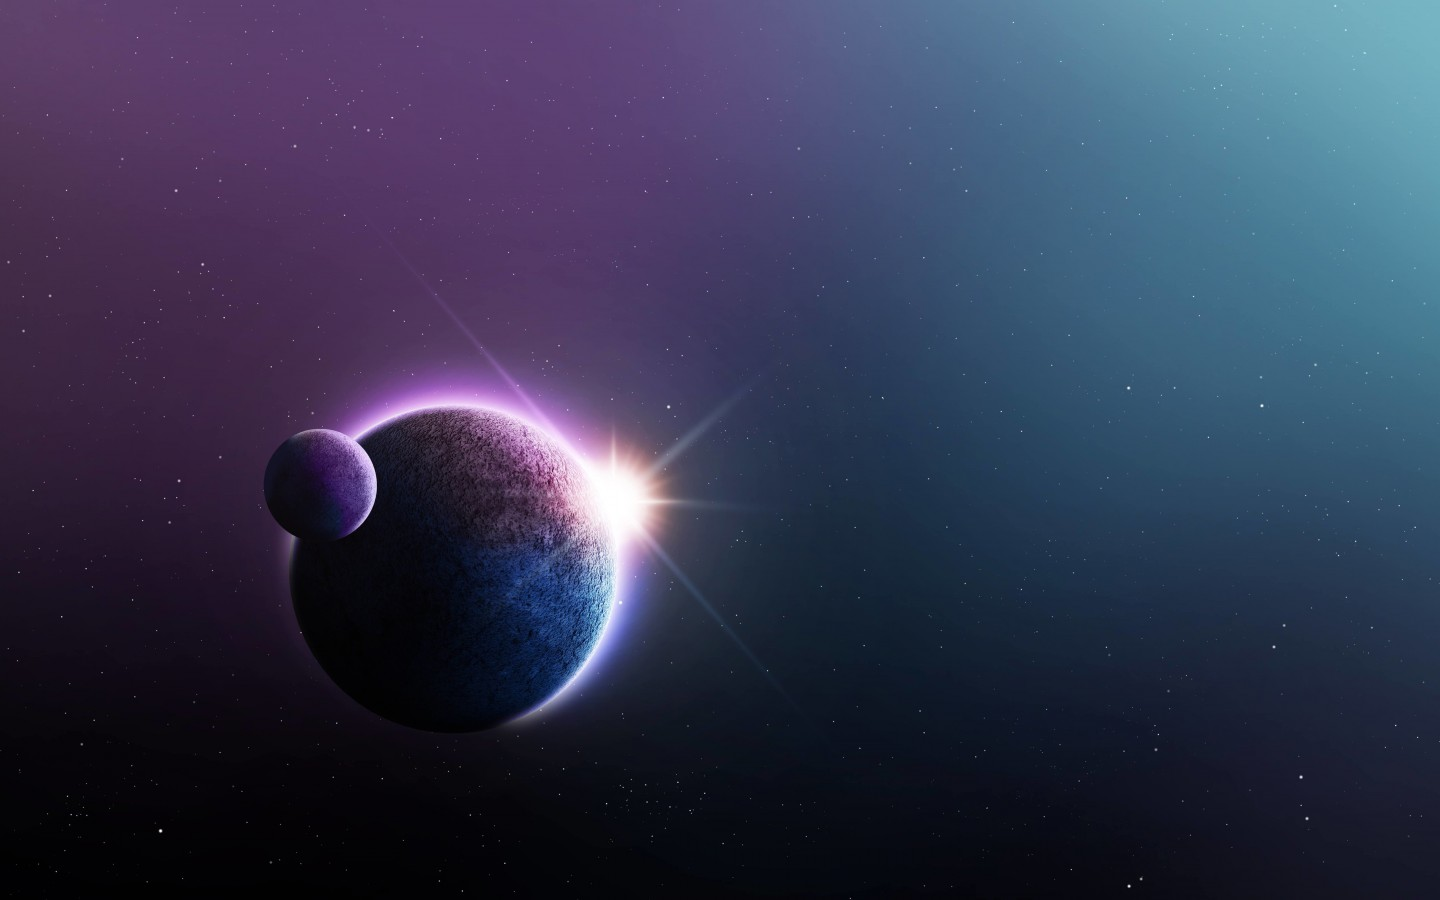 Far-Off Planets Wallpaper for Desktop 1440x900